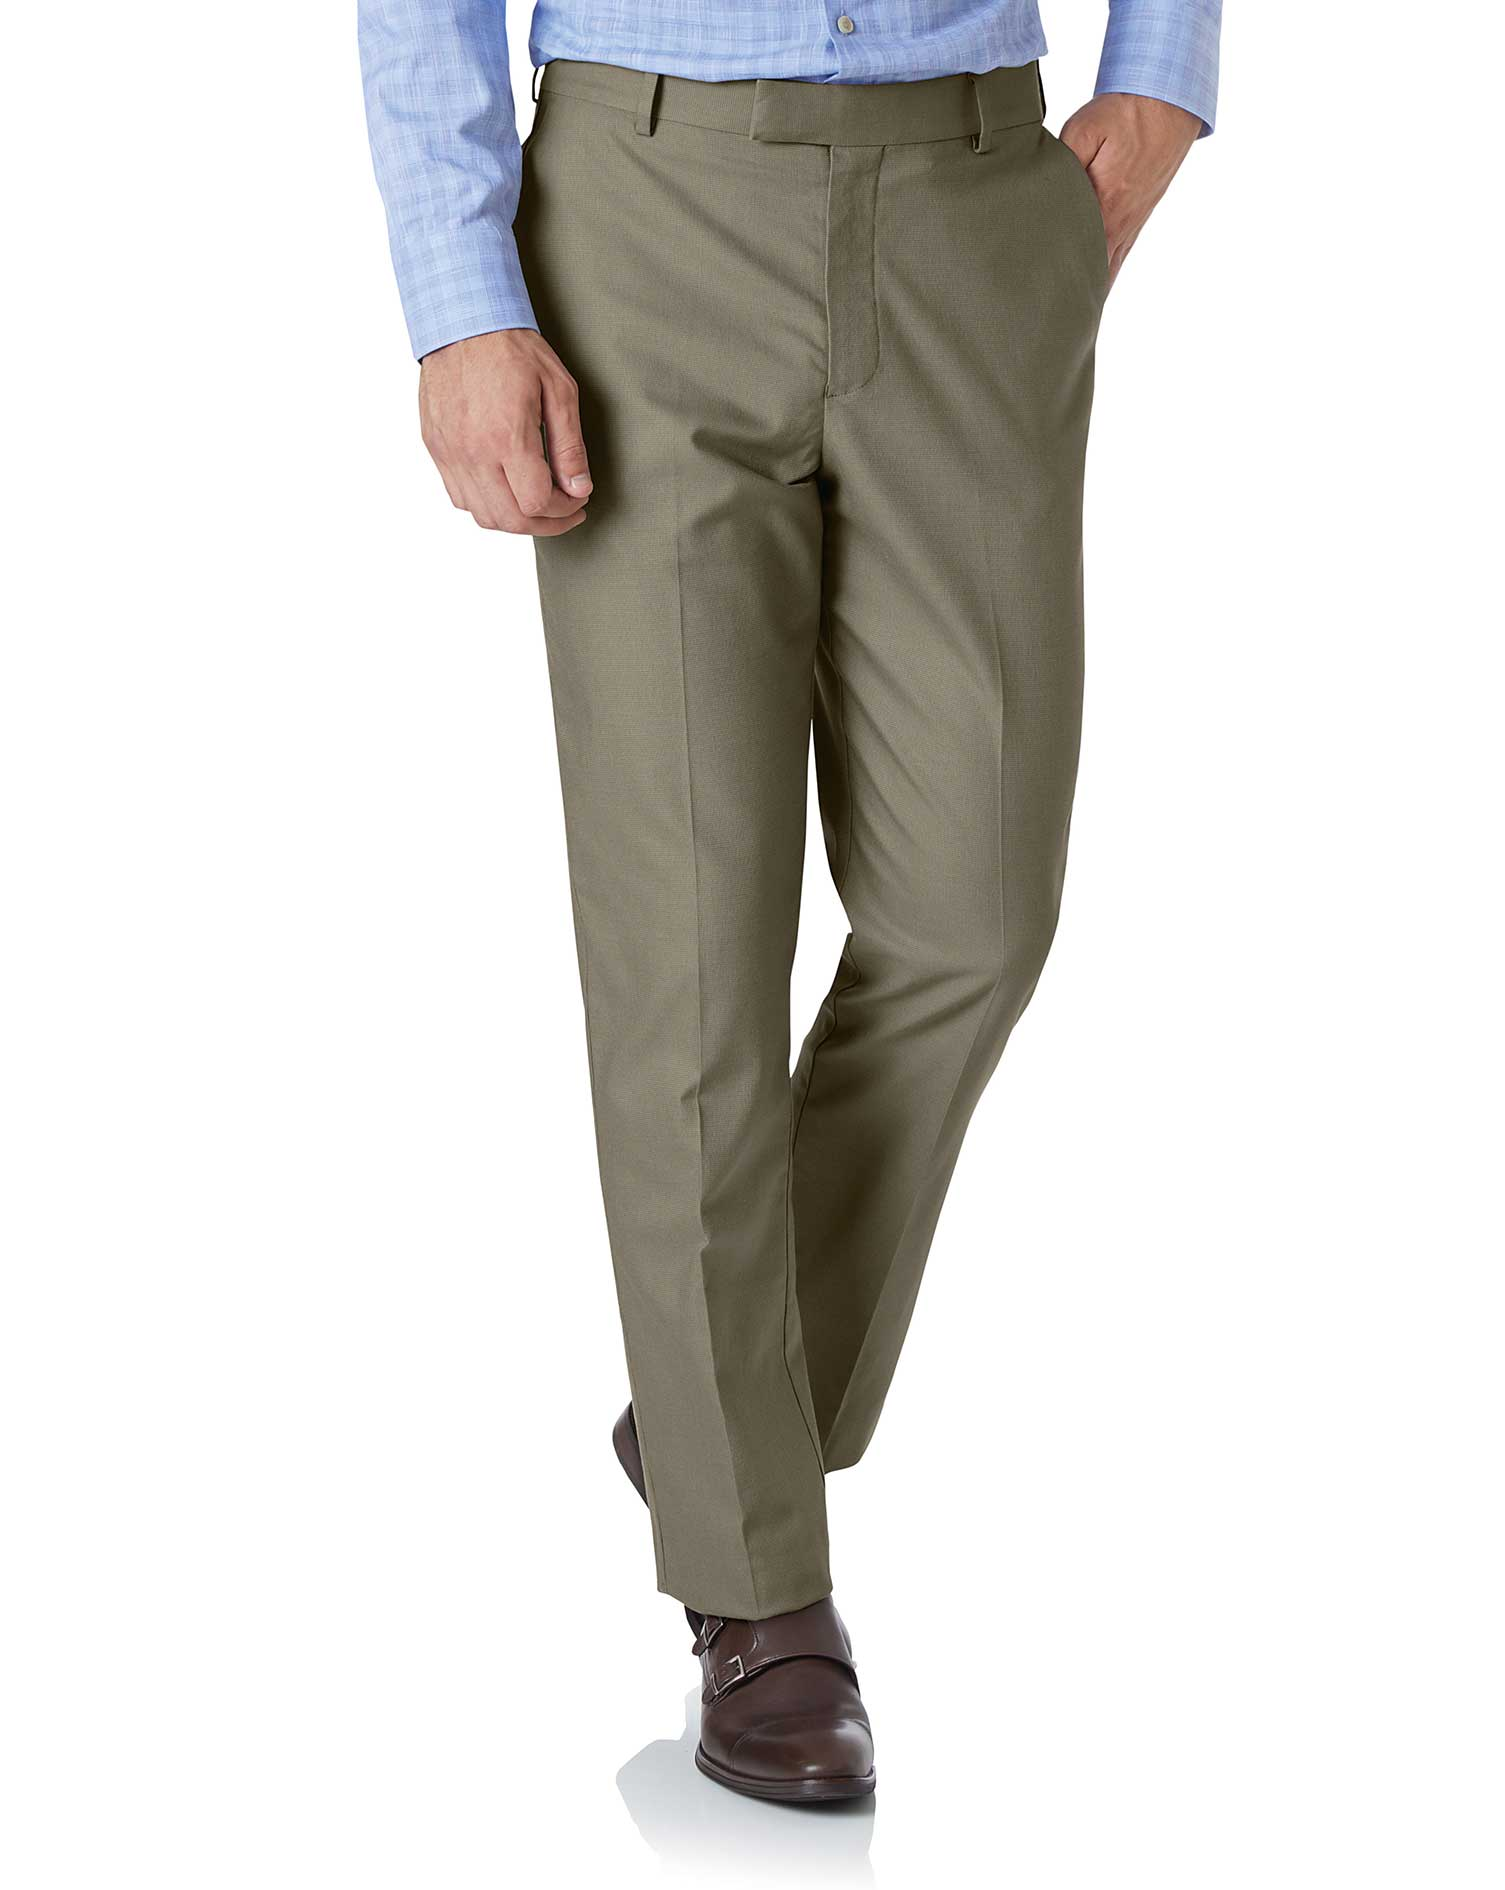 Olive Classic Fit Stretch Non-Iron Trousers Size W32 L32 by Charles Tyrwhitt